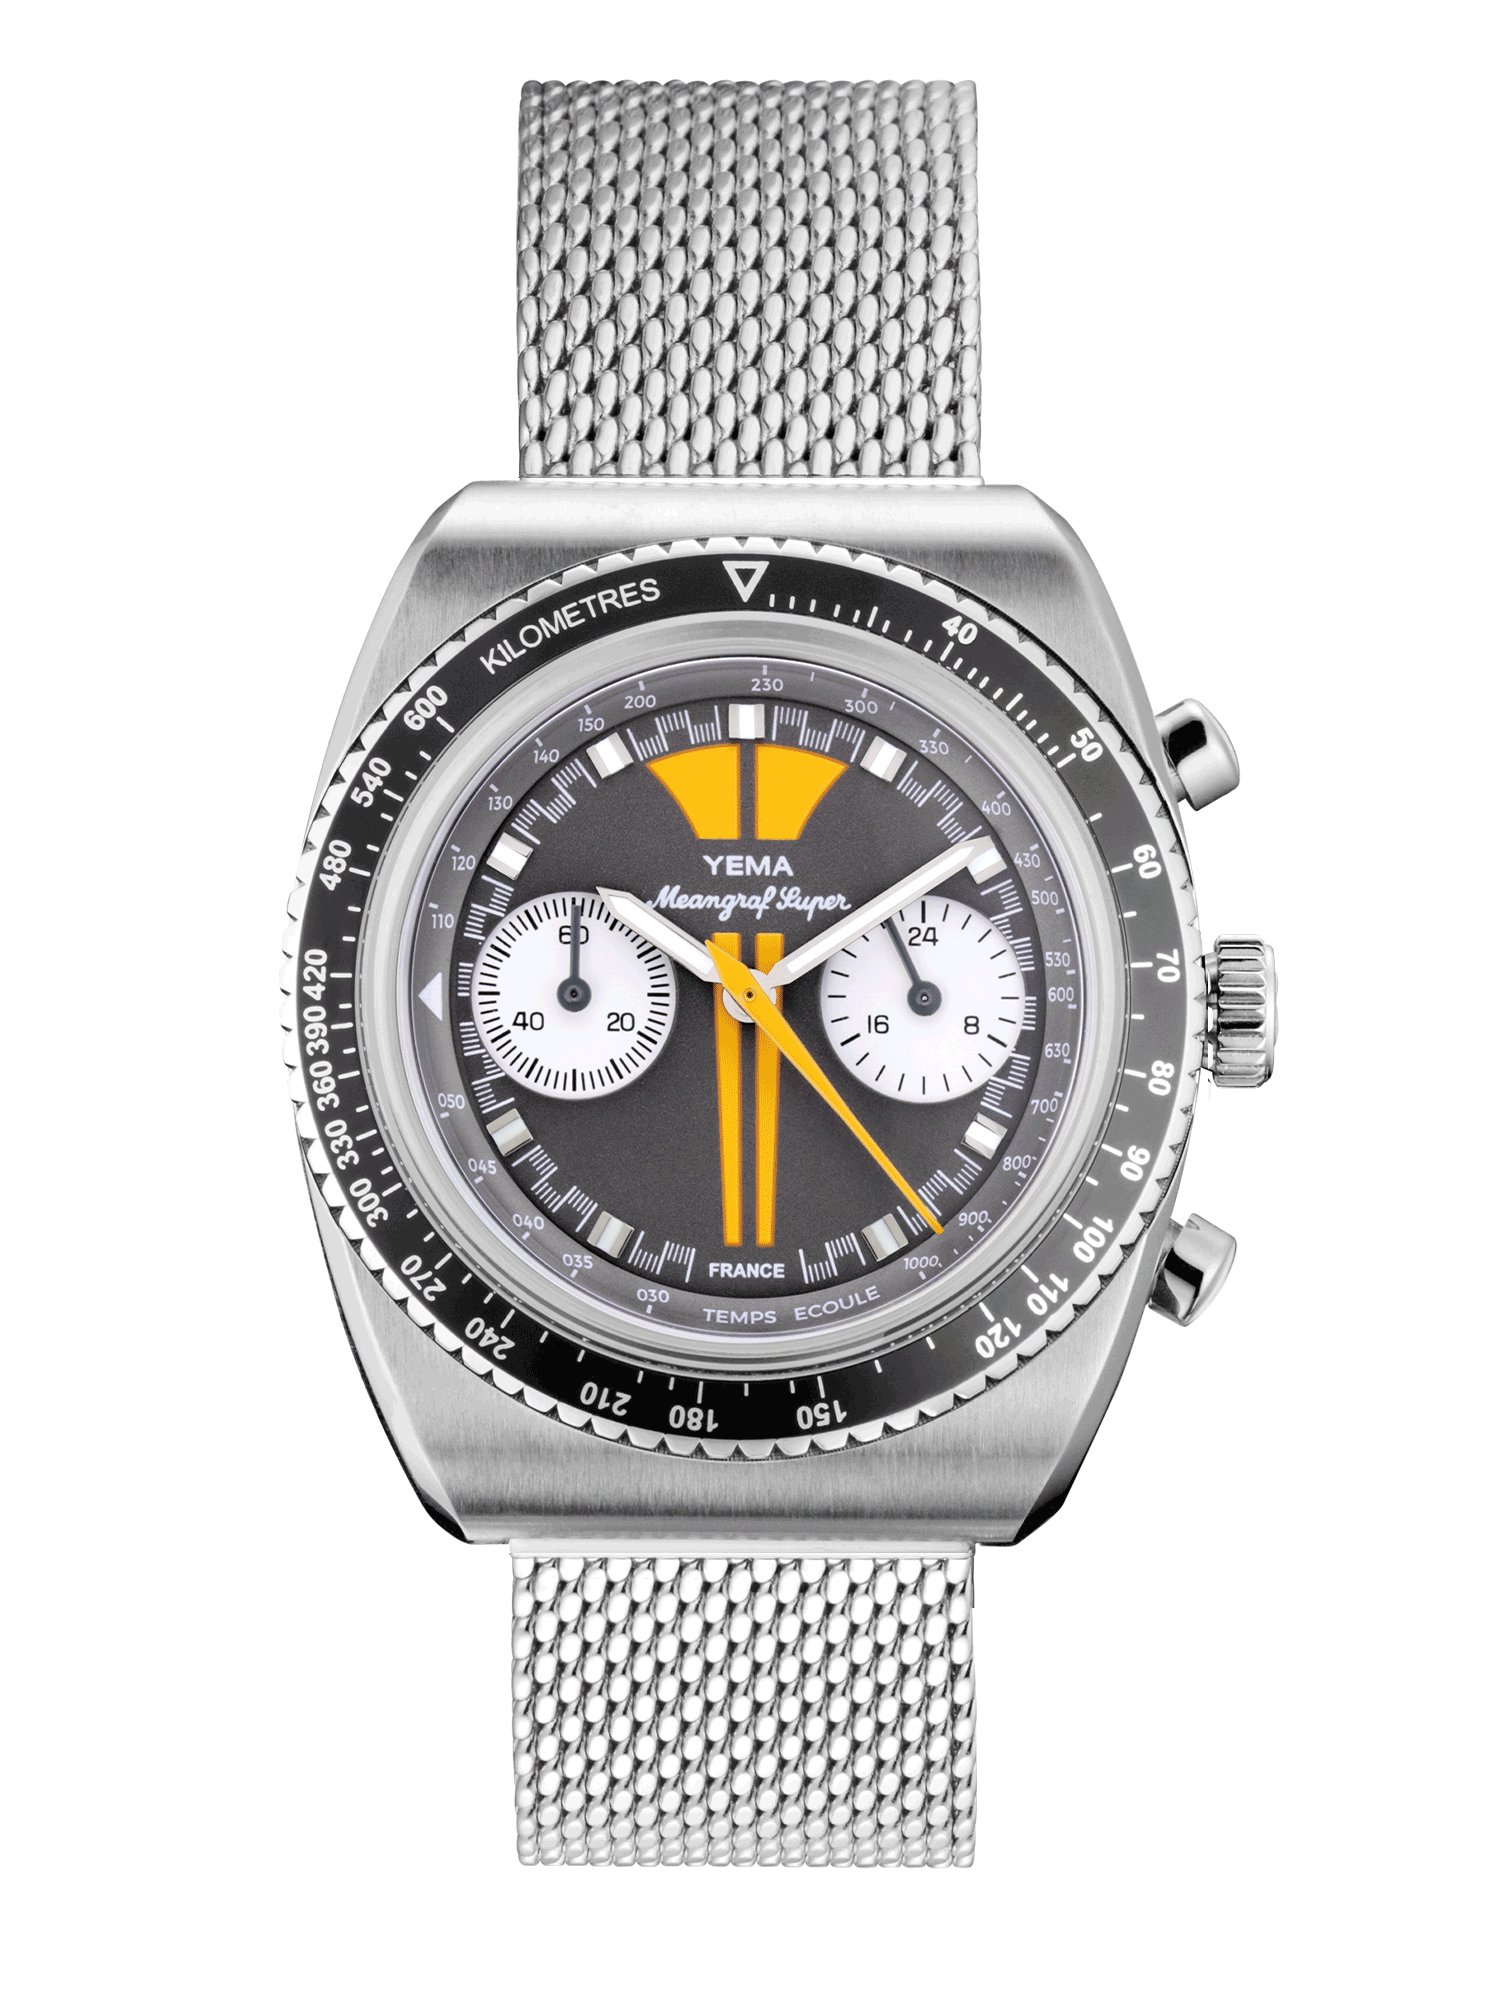 YEMA MEANGRAF SUPER Y70, yellow and grey dial, white chronograph sub-registers.